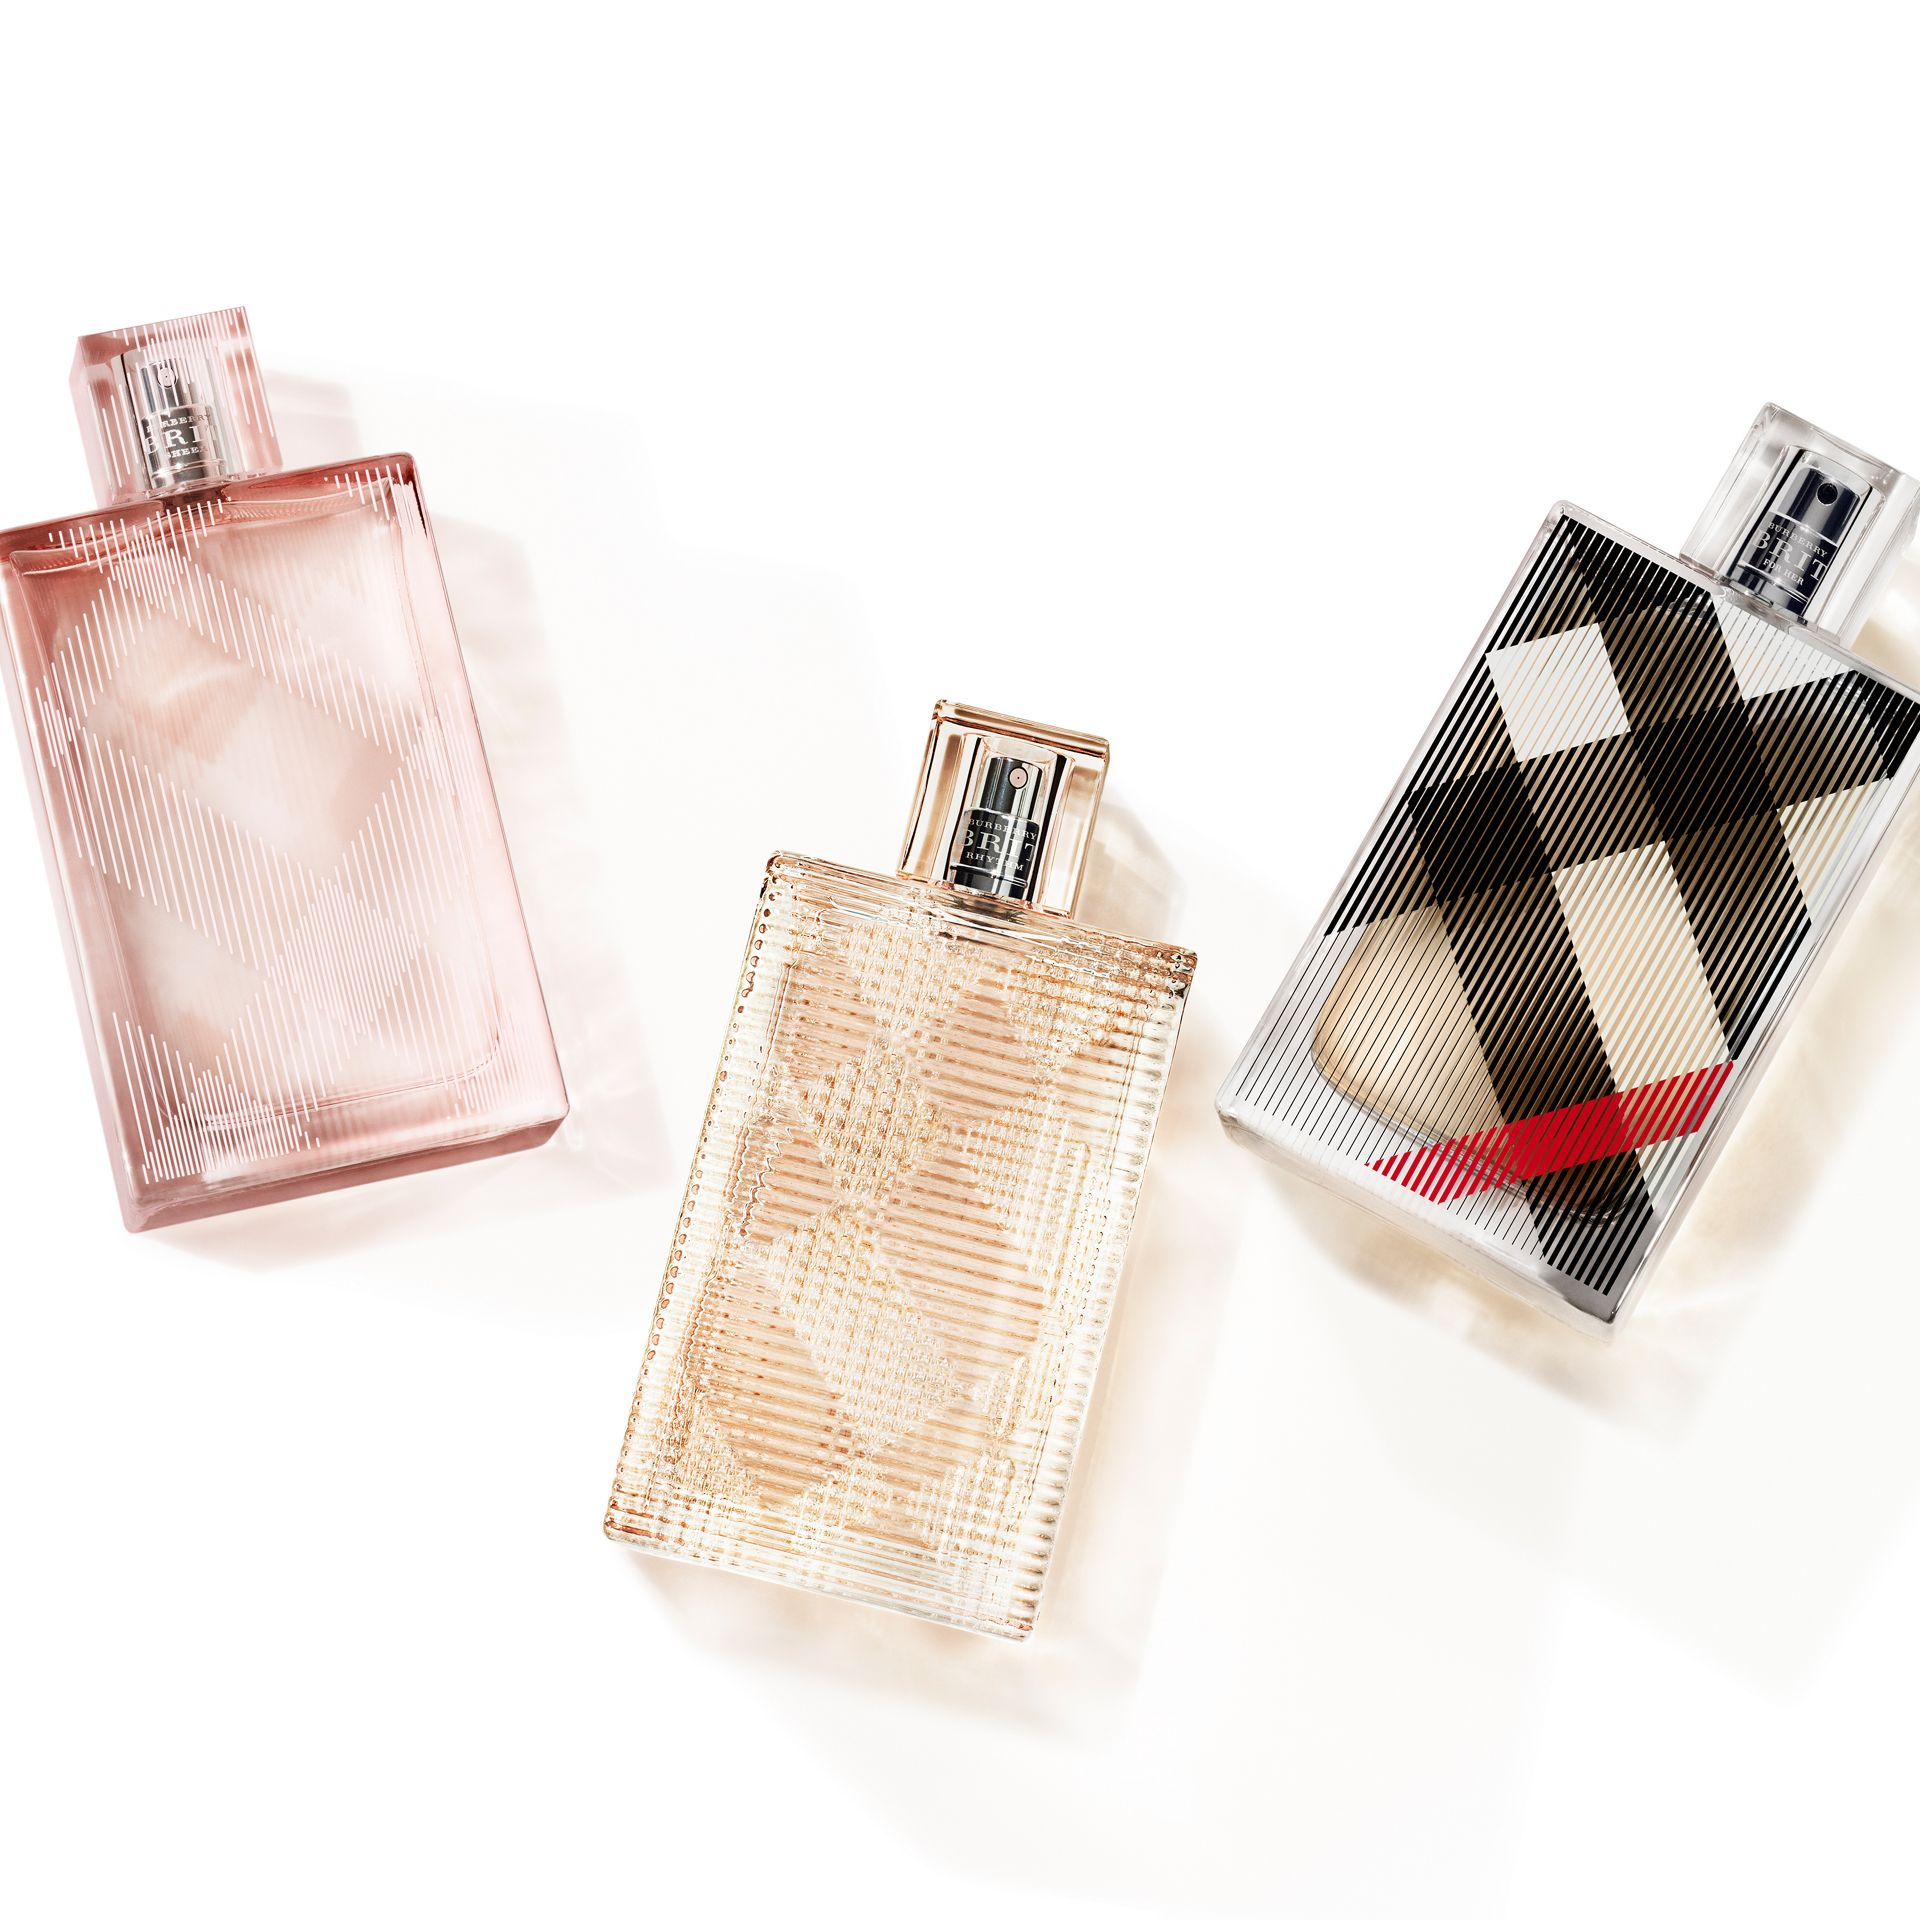 Burberry Brit For Her Eau de Parfum 30 ml - Donna | Burberry - immagine della galleria 3